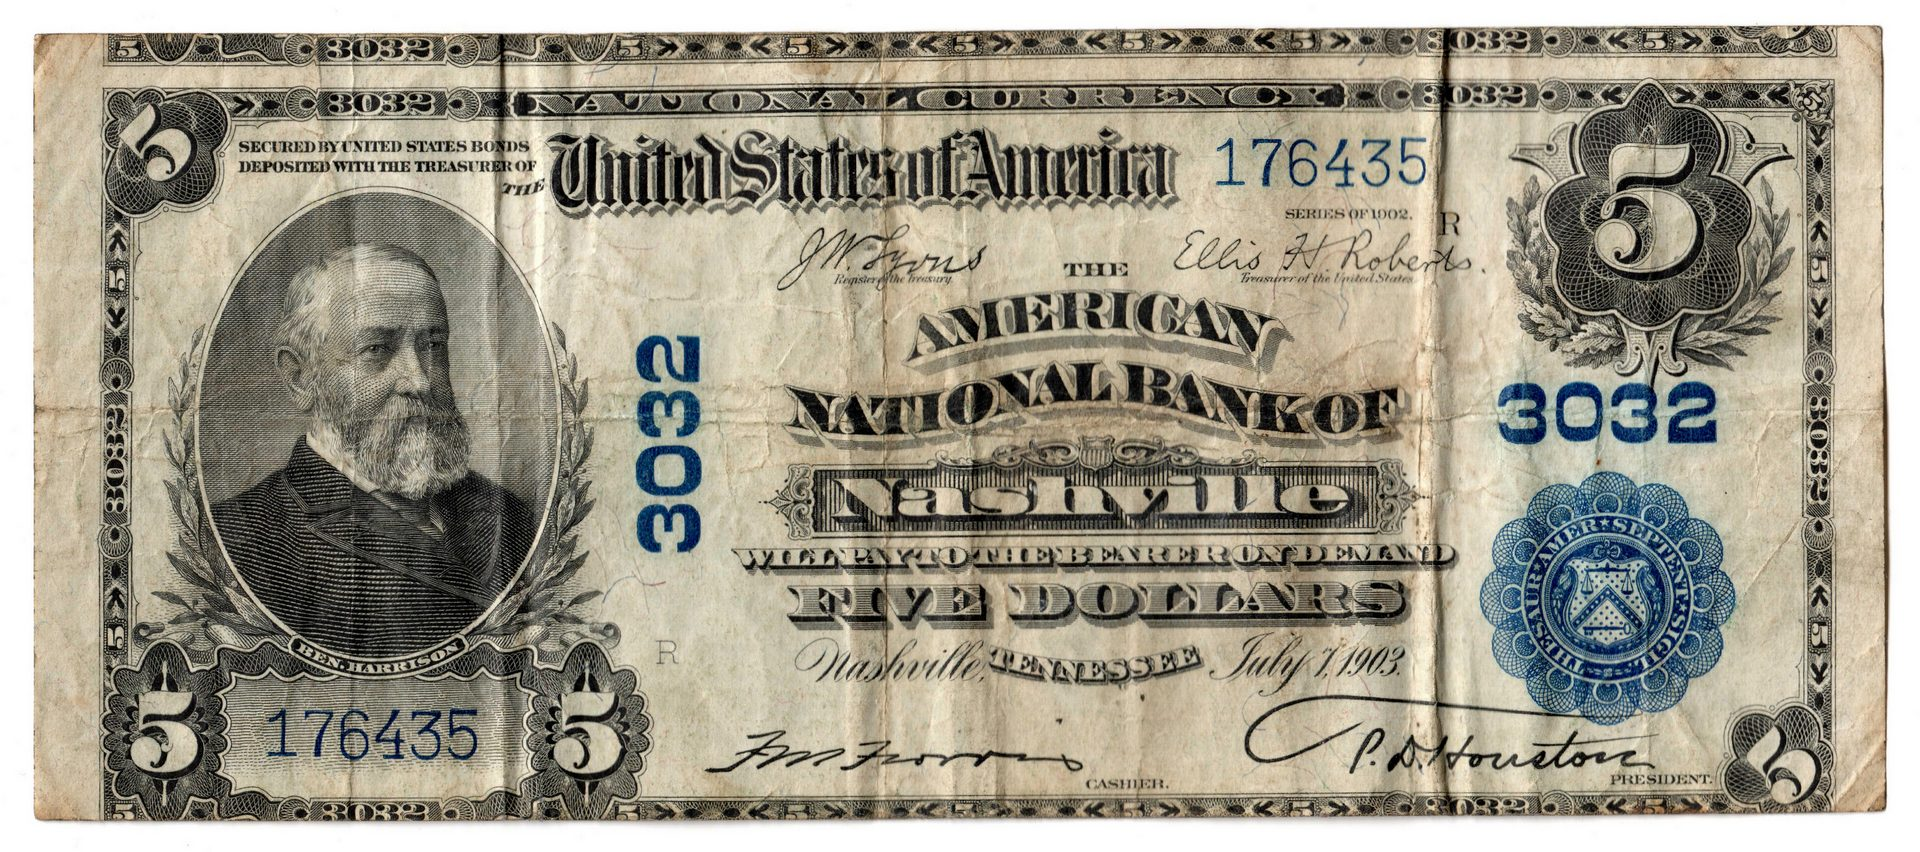 Lot 881: 1902 $5 American National Bank of Nashville